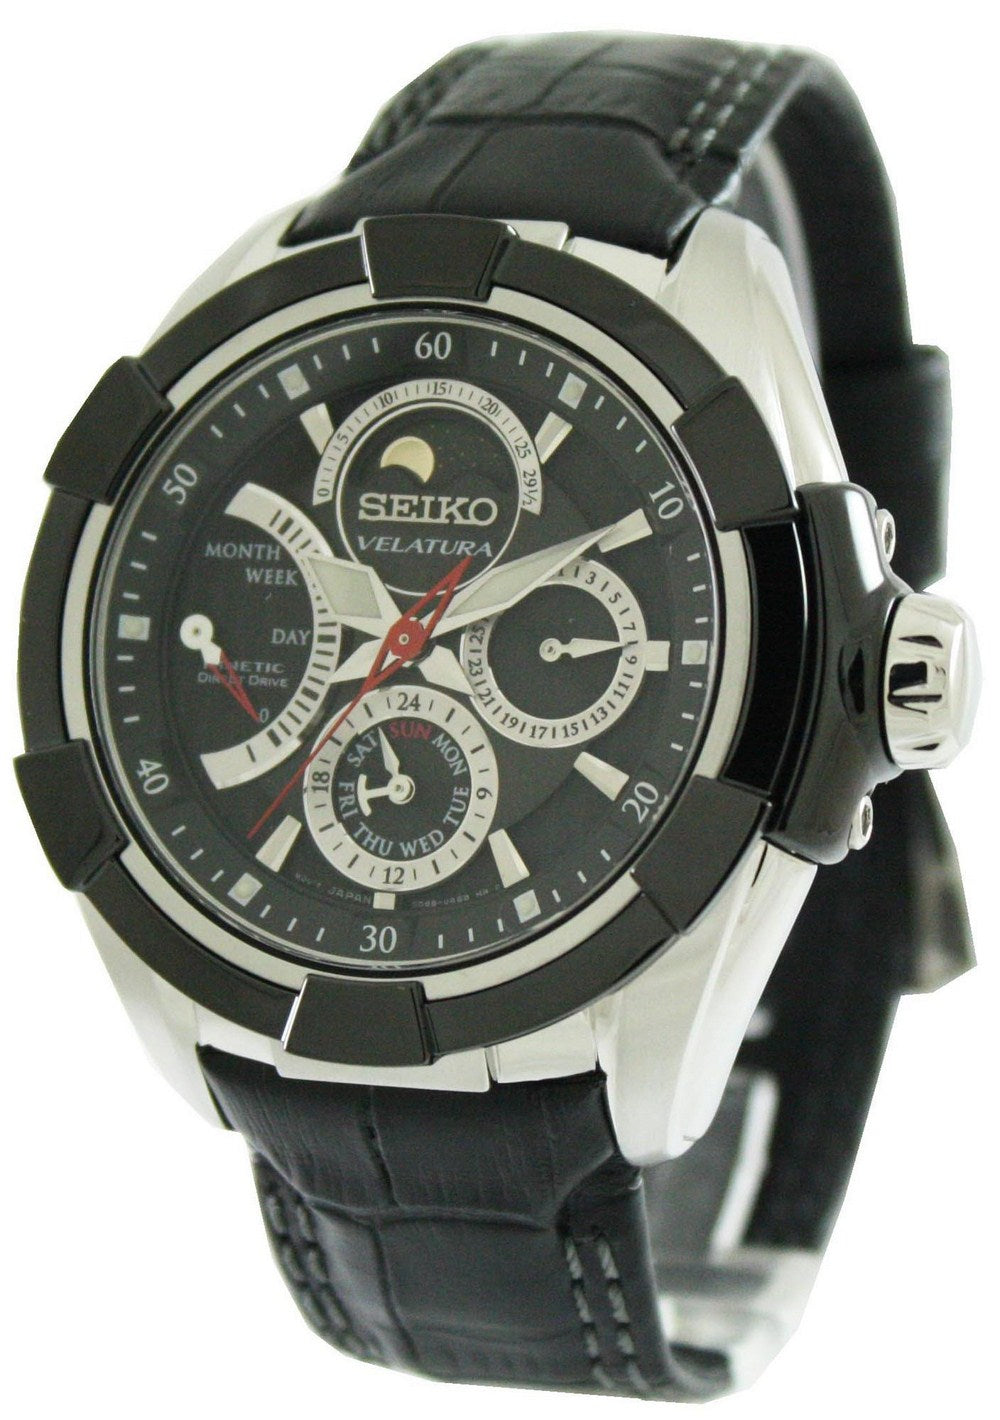 Seiko Velatura Kinetic Direct Drive SRX009P2 Men's Watch